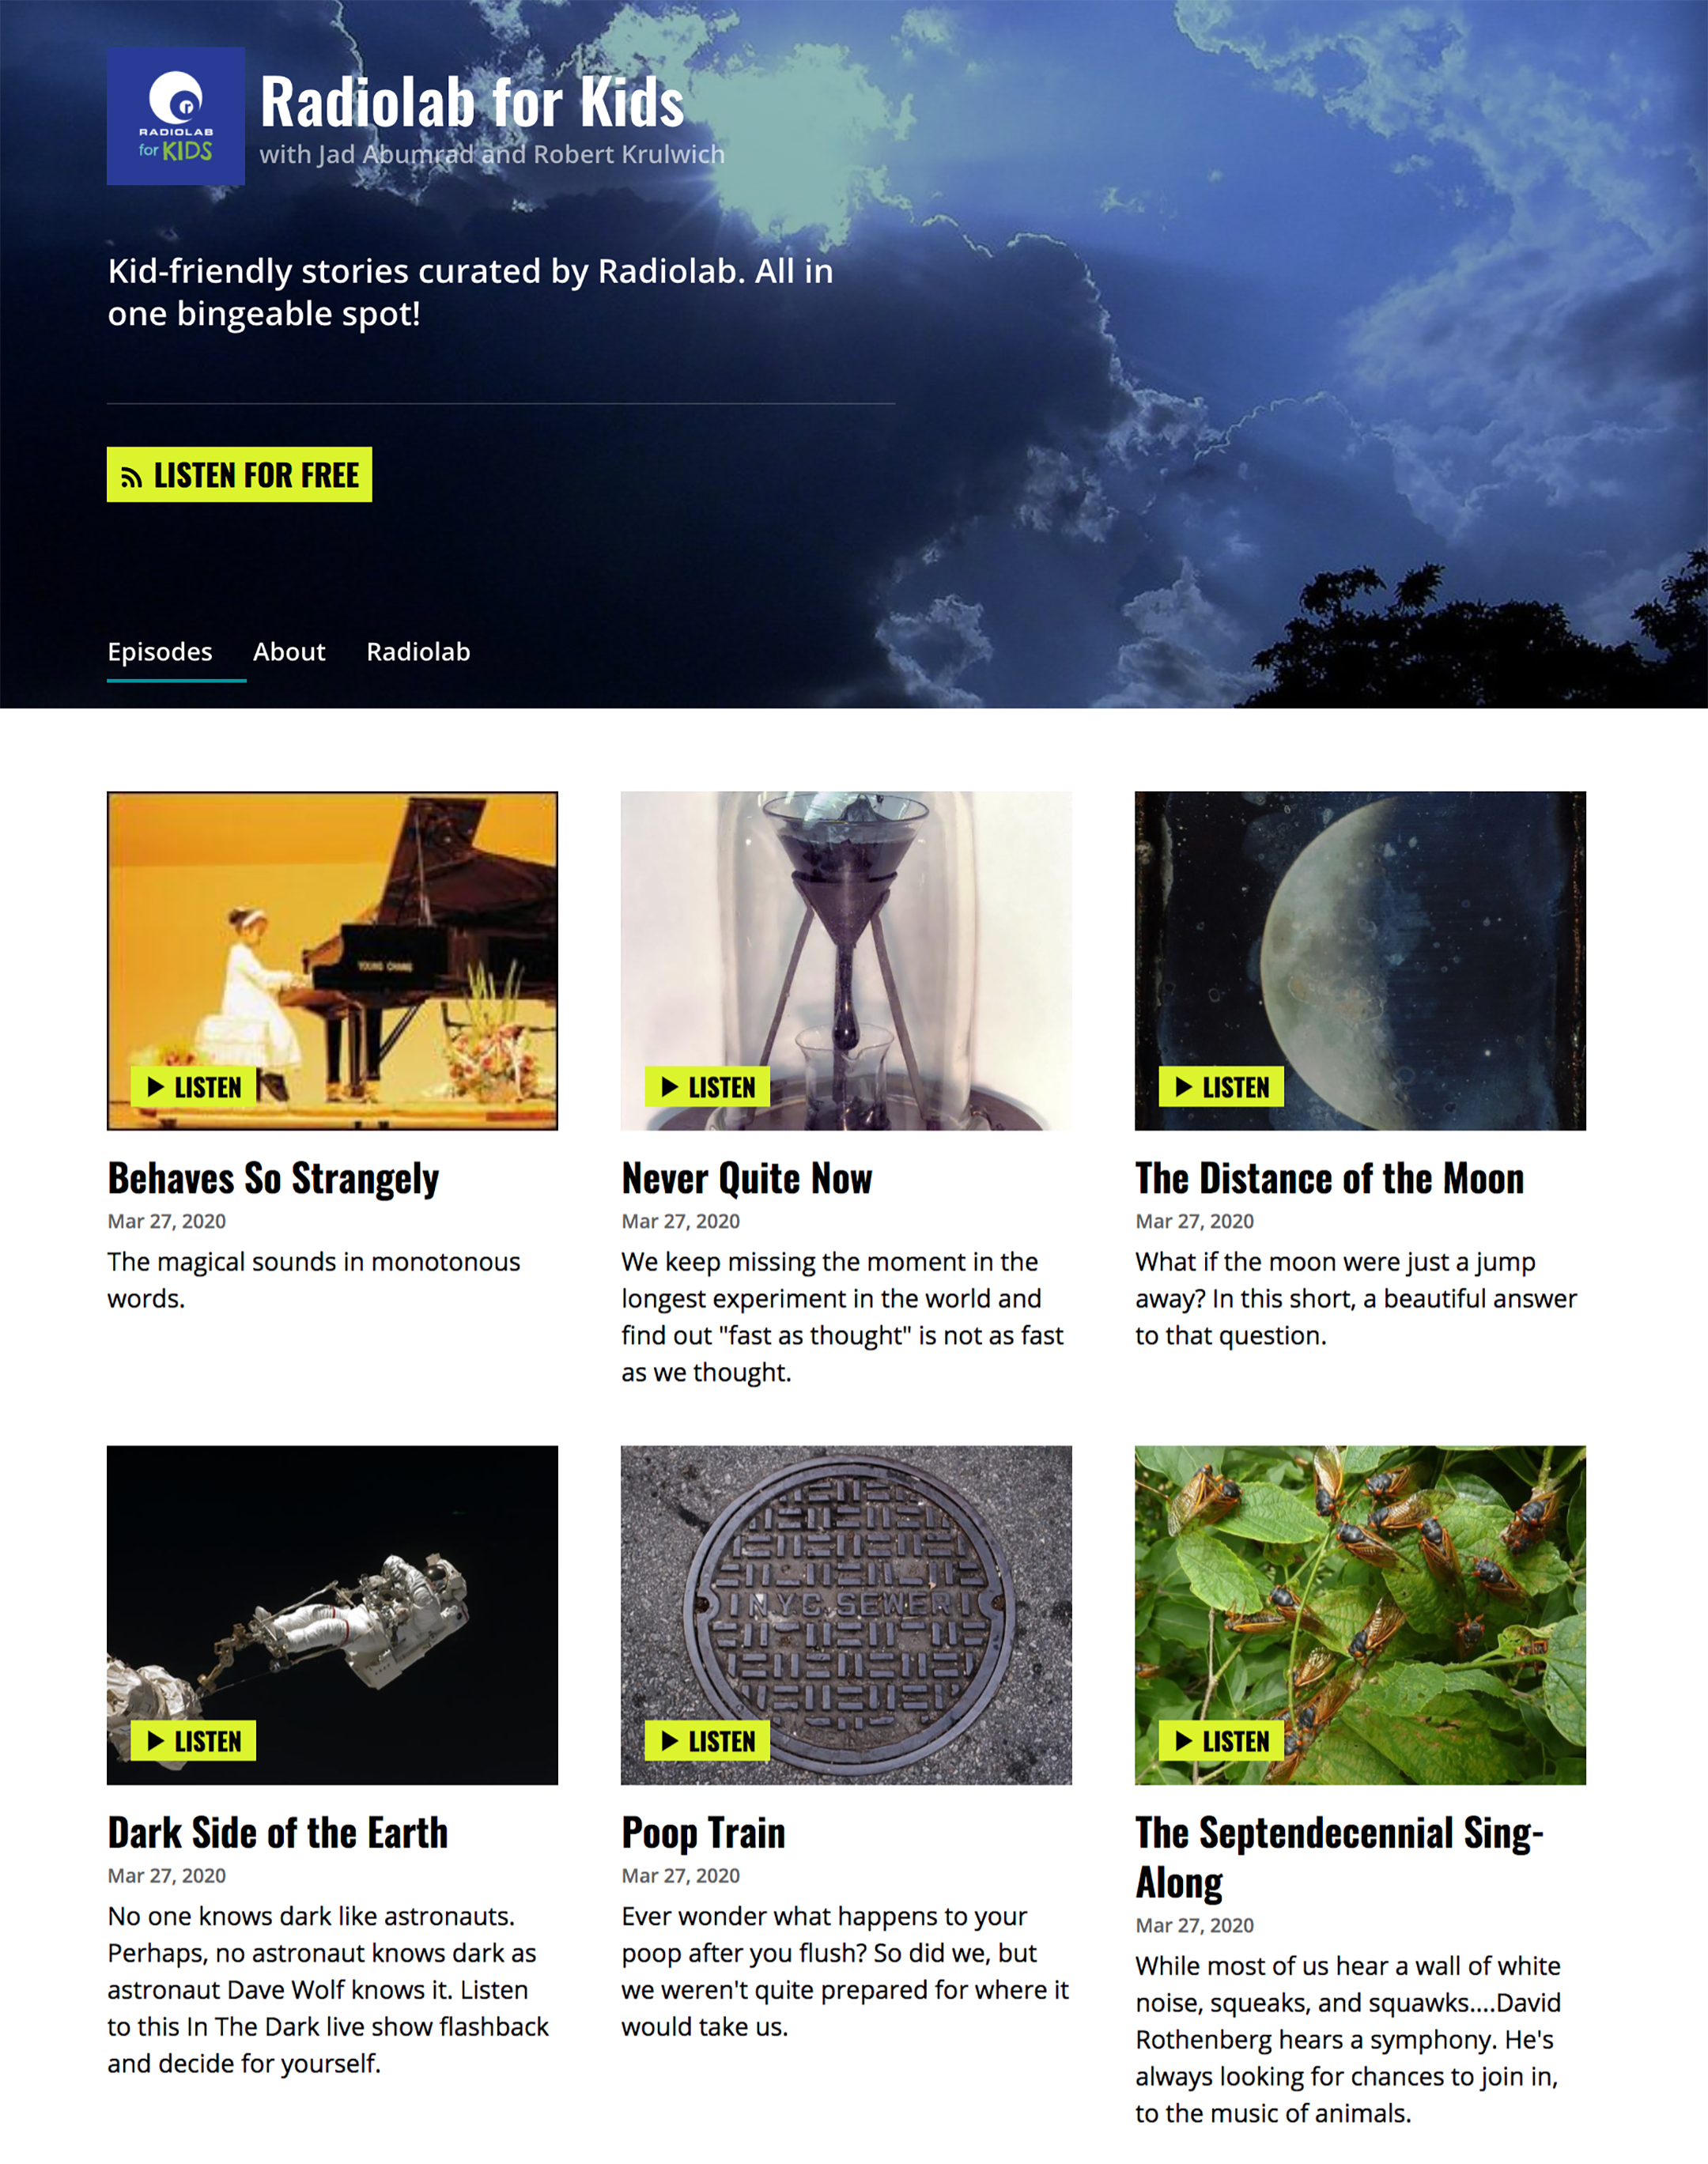 a screenshot of the radiolab for kids website showing a grid of six images promoting six current episodes of the podcast